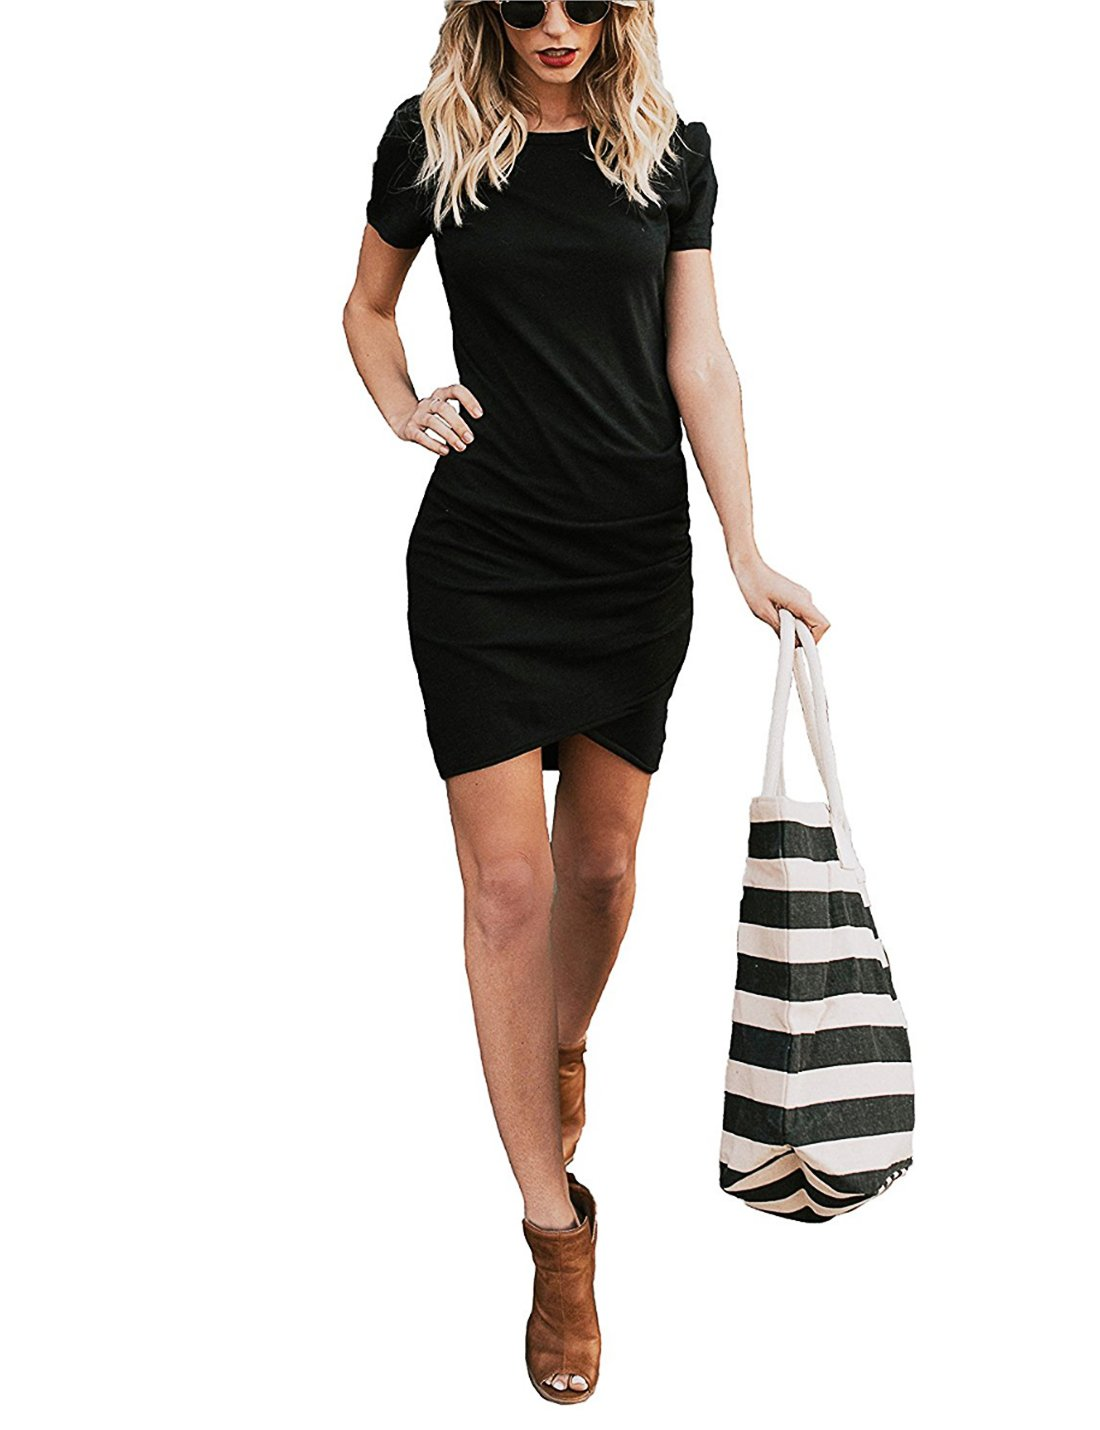 CAIYING Womens Summer Casual Solid Ruched Short Sleeve T-Shirt Midi Dress (Black, M) by CAIYING